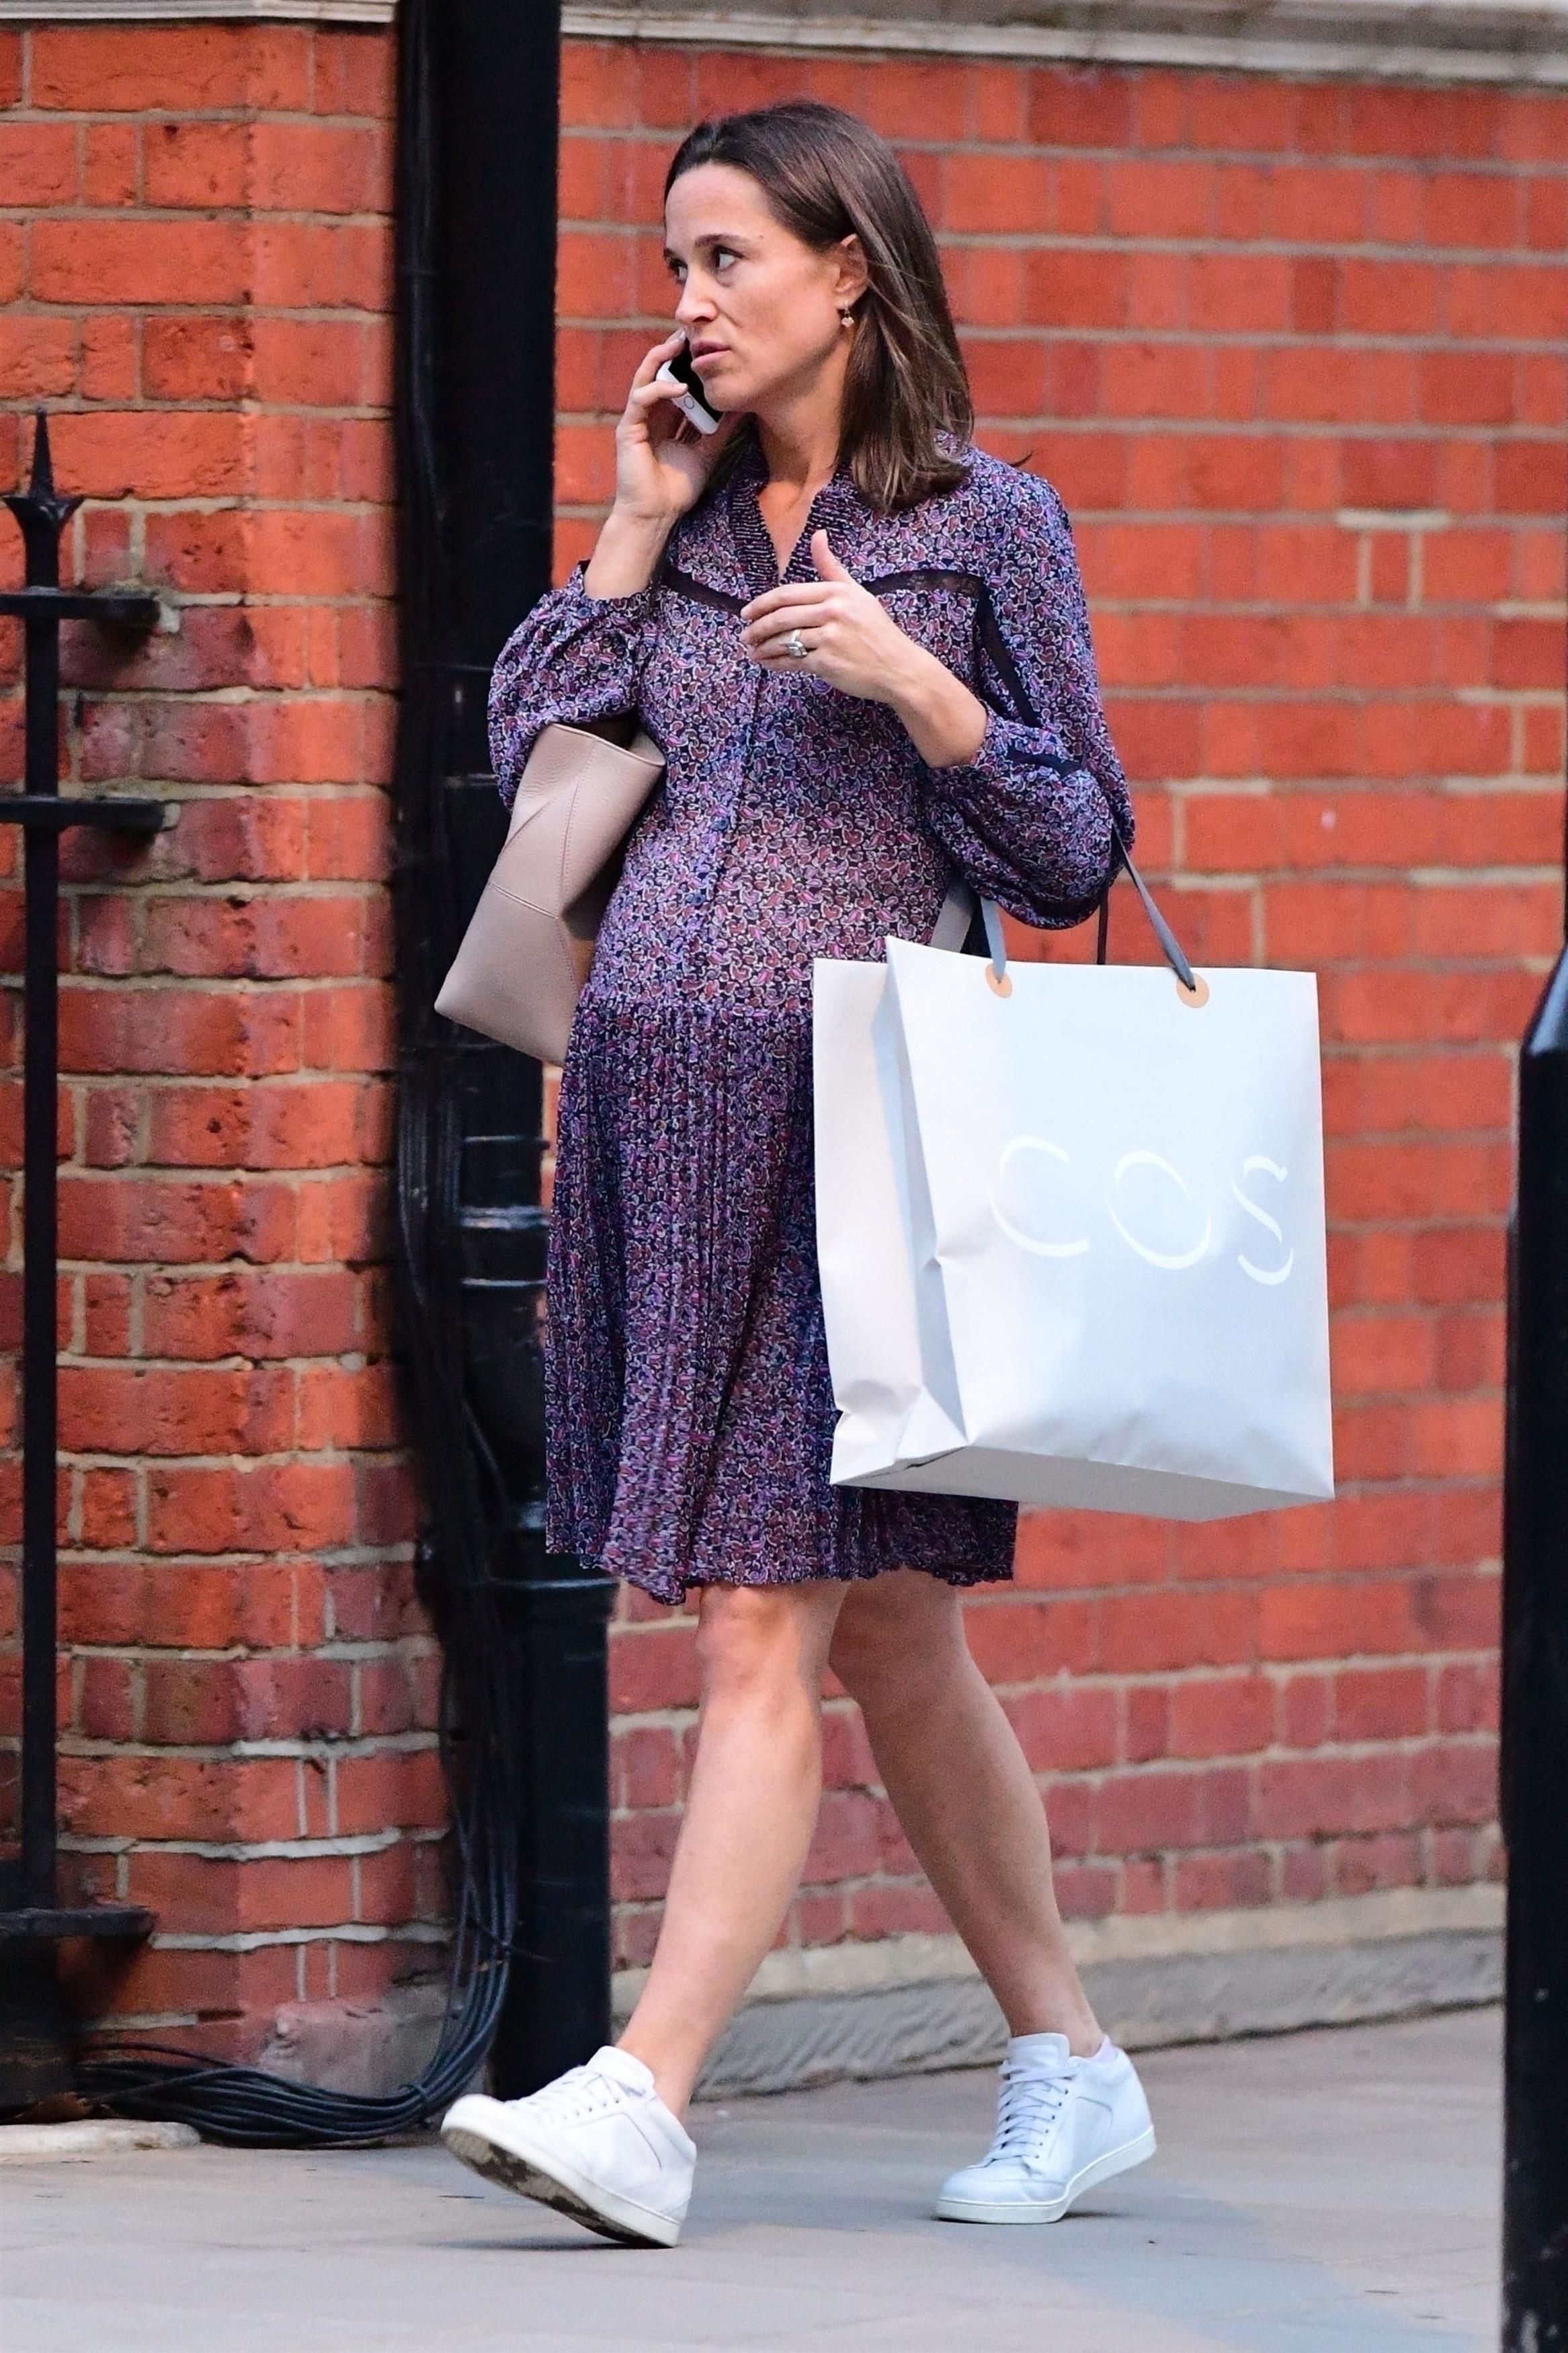 91625a550b030 Pippa Middleton's Best Pregnancy Outfits - Pippa Middleton Chic Maternity  Style